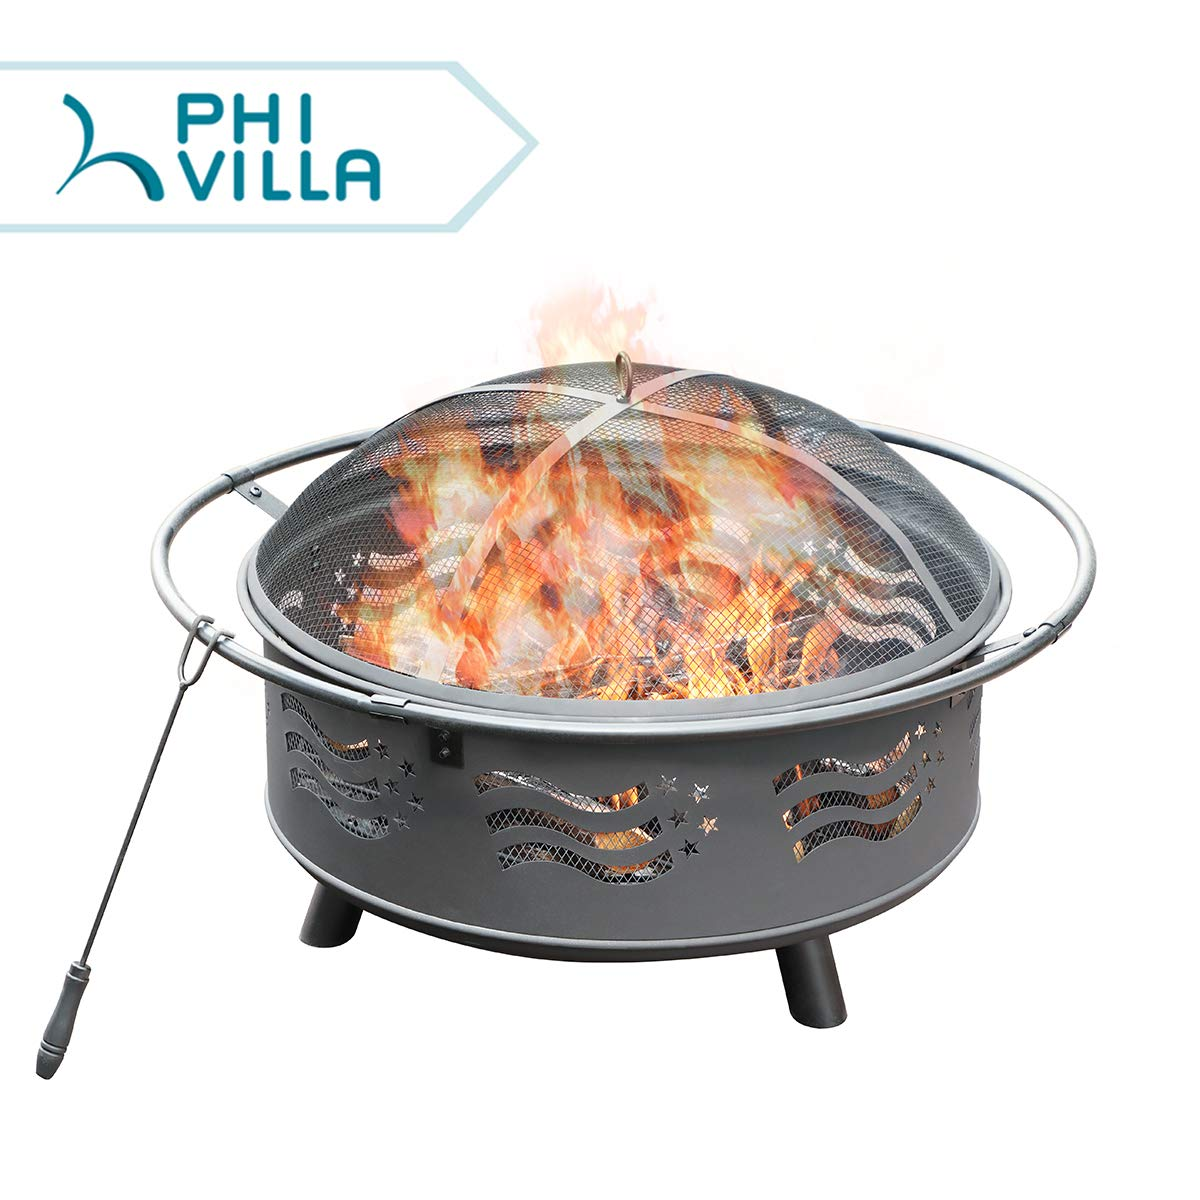 PHI VILLA 32 Fire Pit Large Steel Patio Fireplace Cutouts Pattern with Poker /& Spark Screen